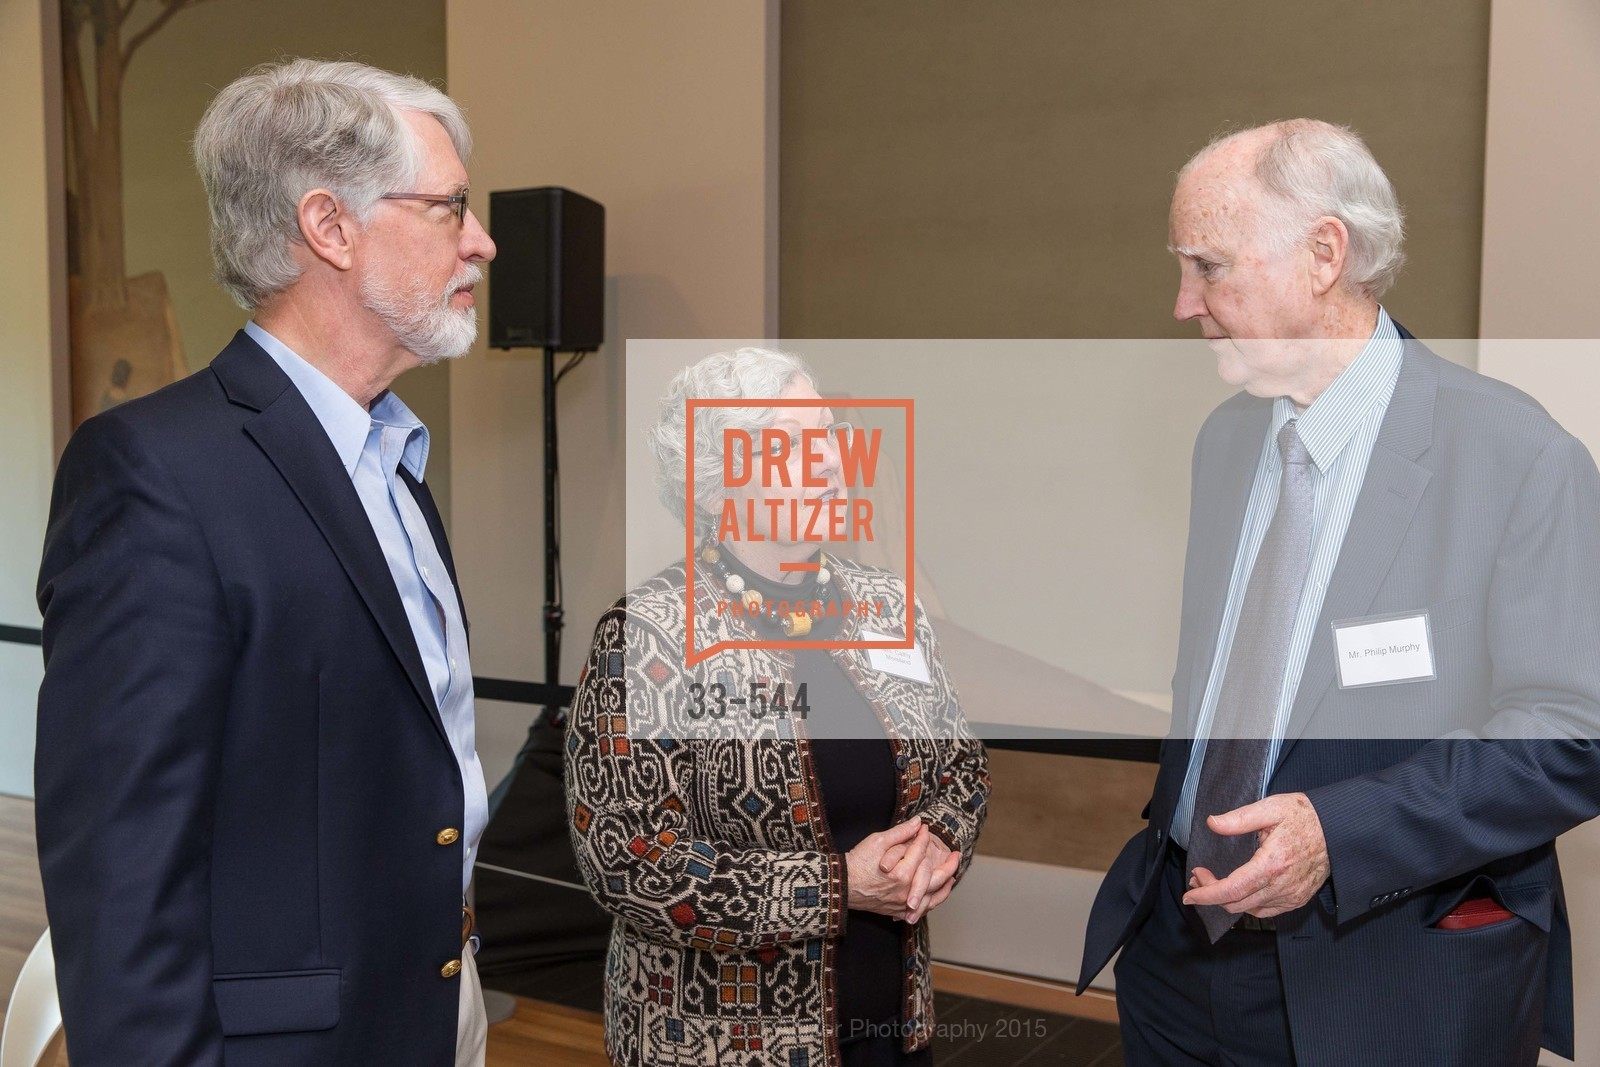 Howard Moreland, Cathy Moreland, Philip Murphy, FAMSF hosts the Legacy Tea Reception, de Young Museum, November 17th, 2015,Drew Altizer, Drew Altizer Photography, full-service agency, private events, San Francisco photographer, photographer california